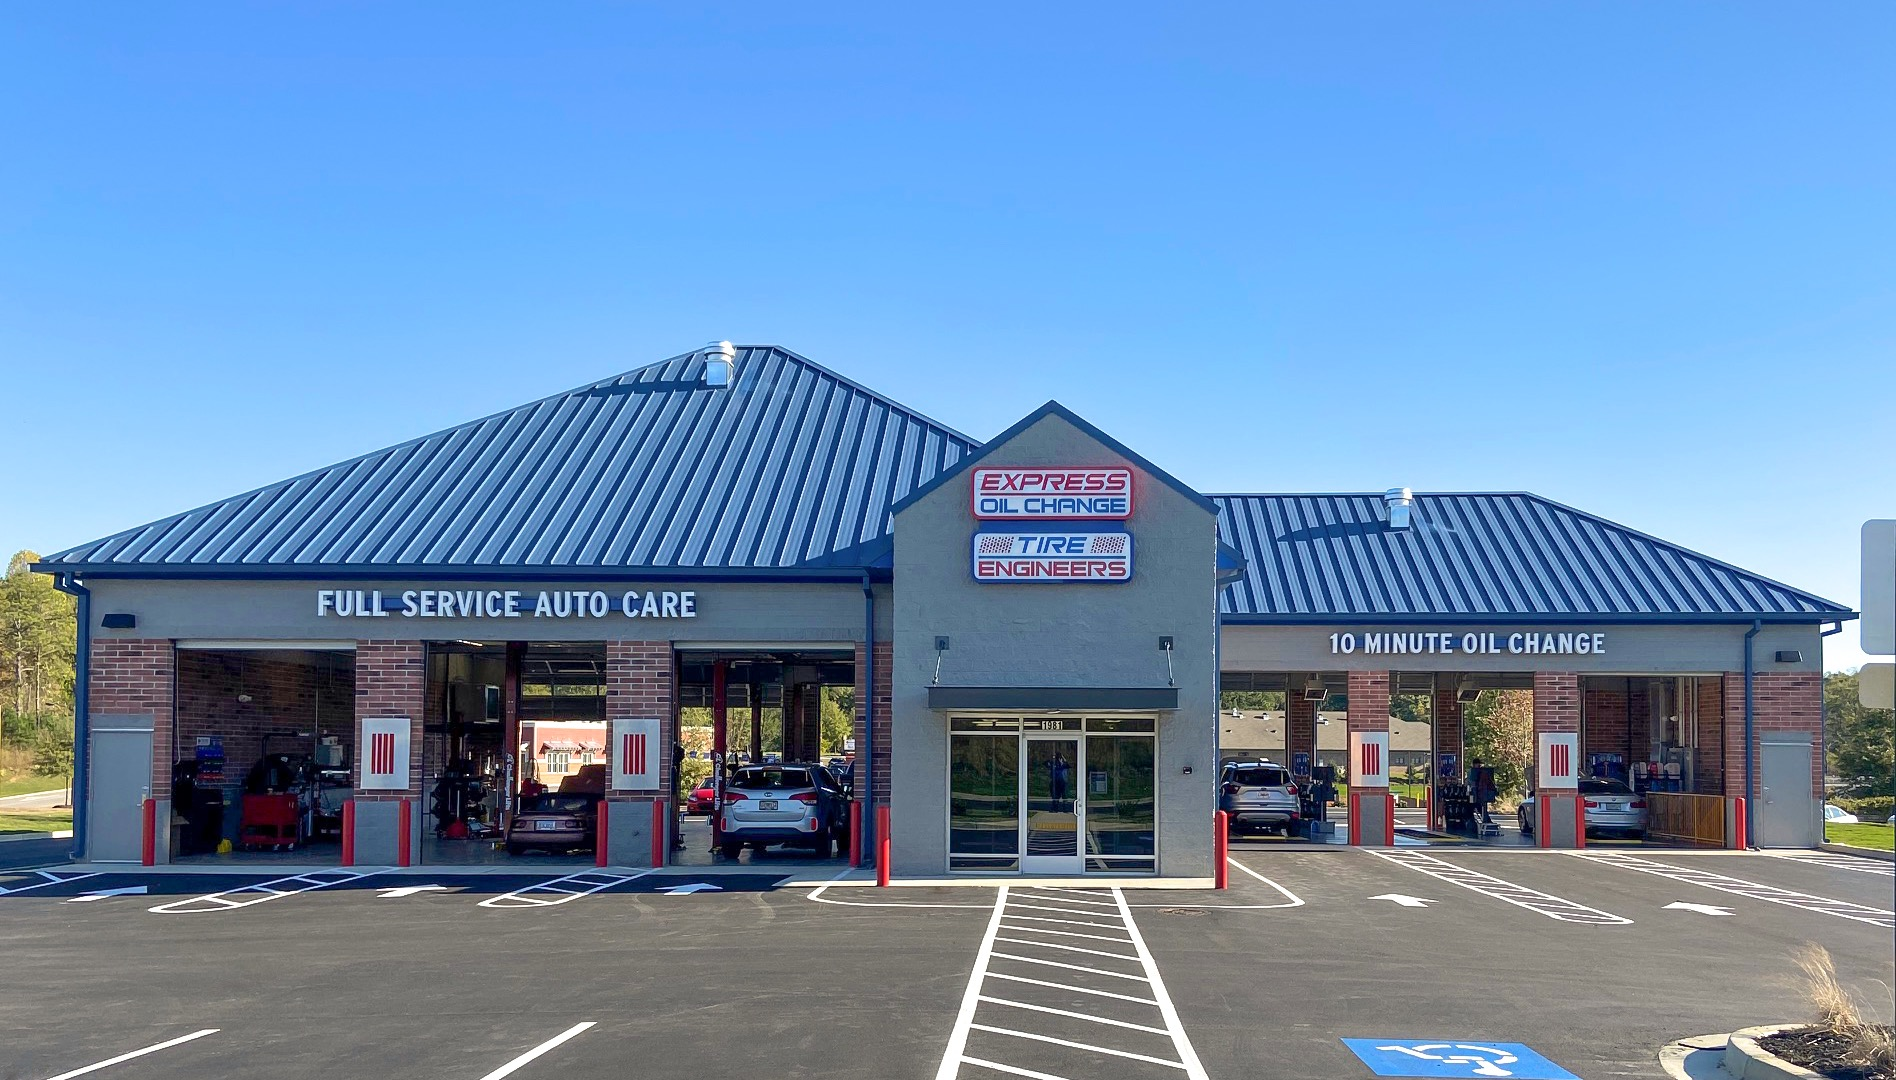 Express Oil Change & Tire Engineers at Gainesville, GA - New Holland store